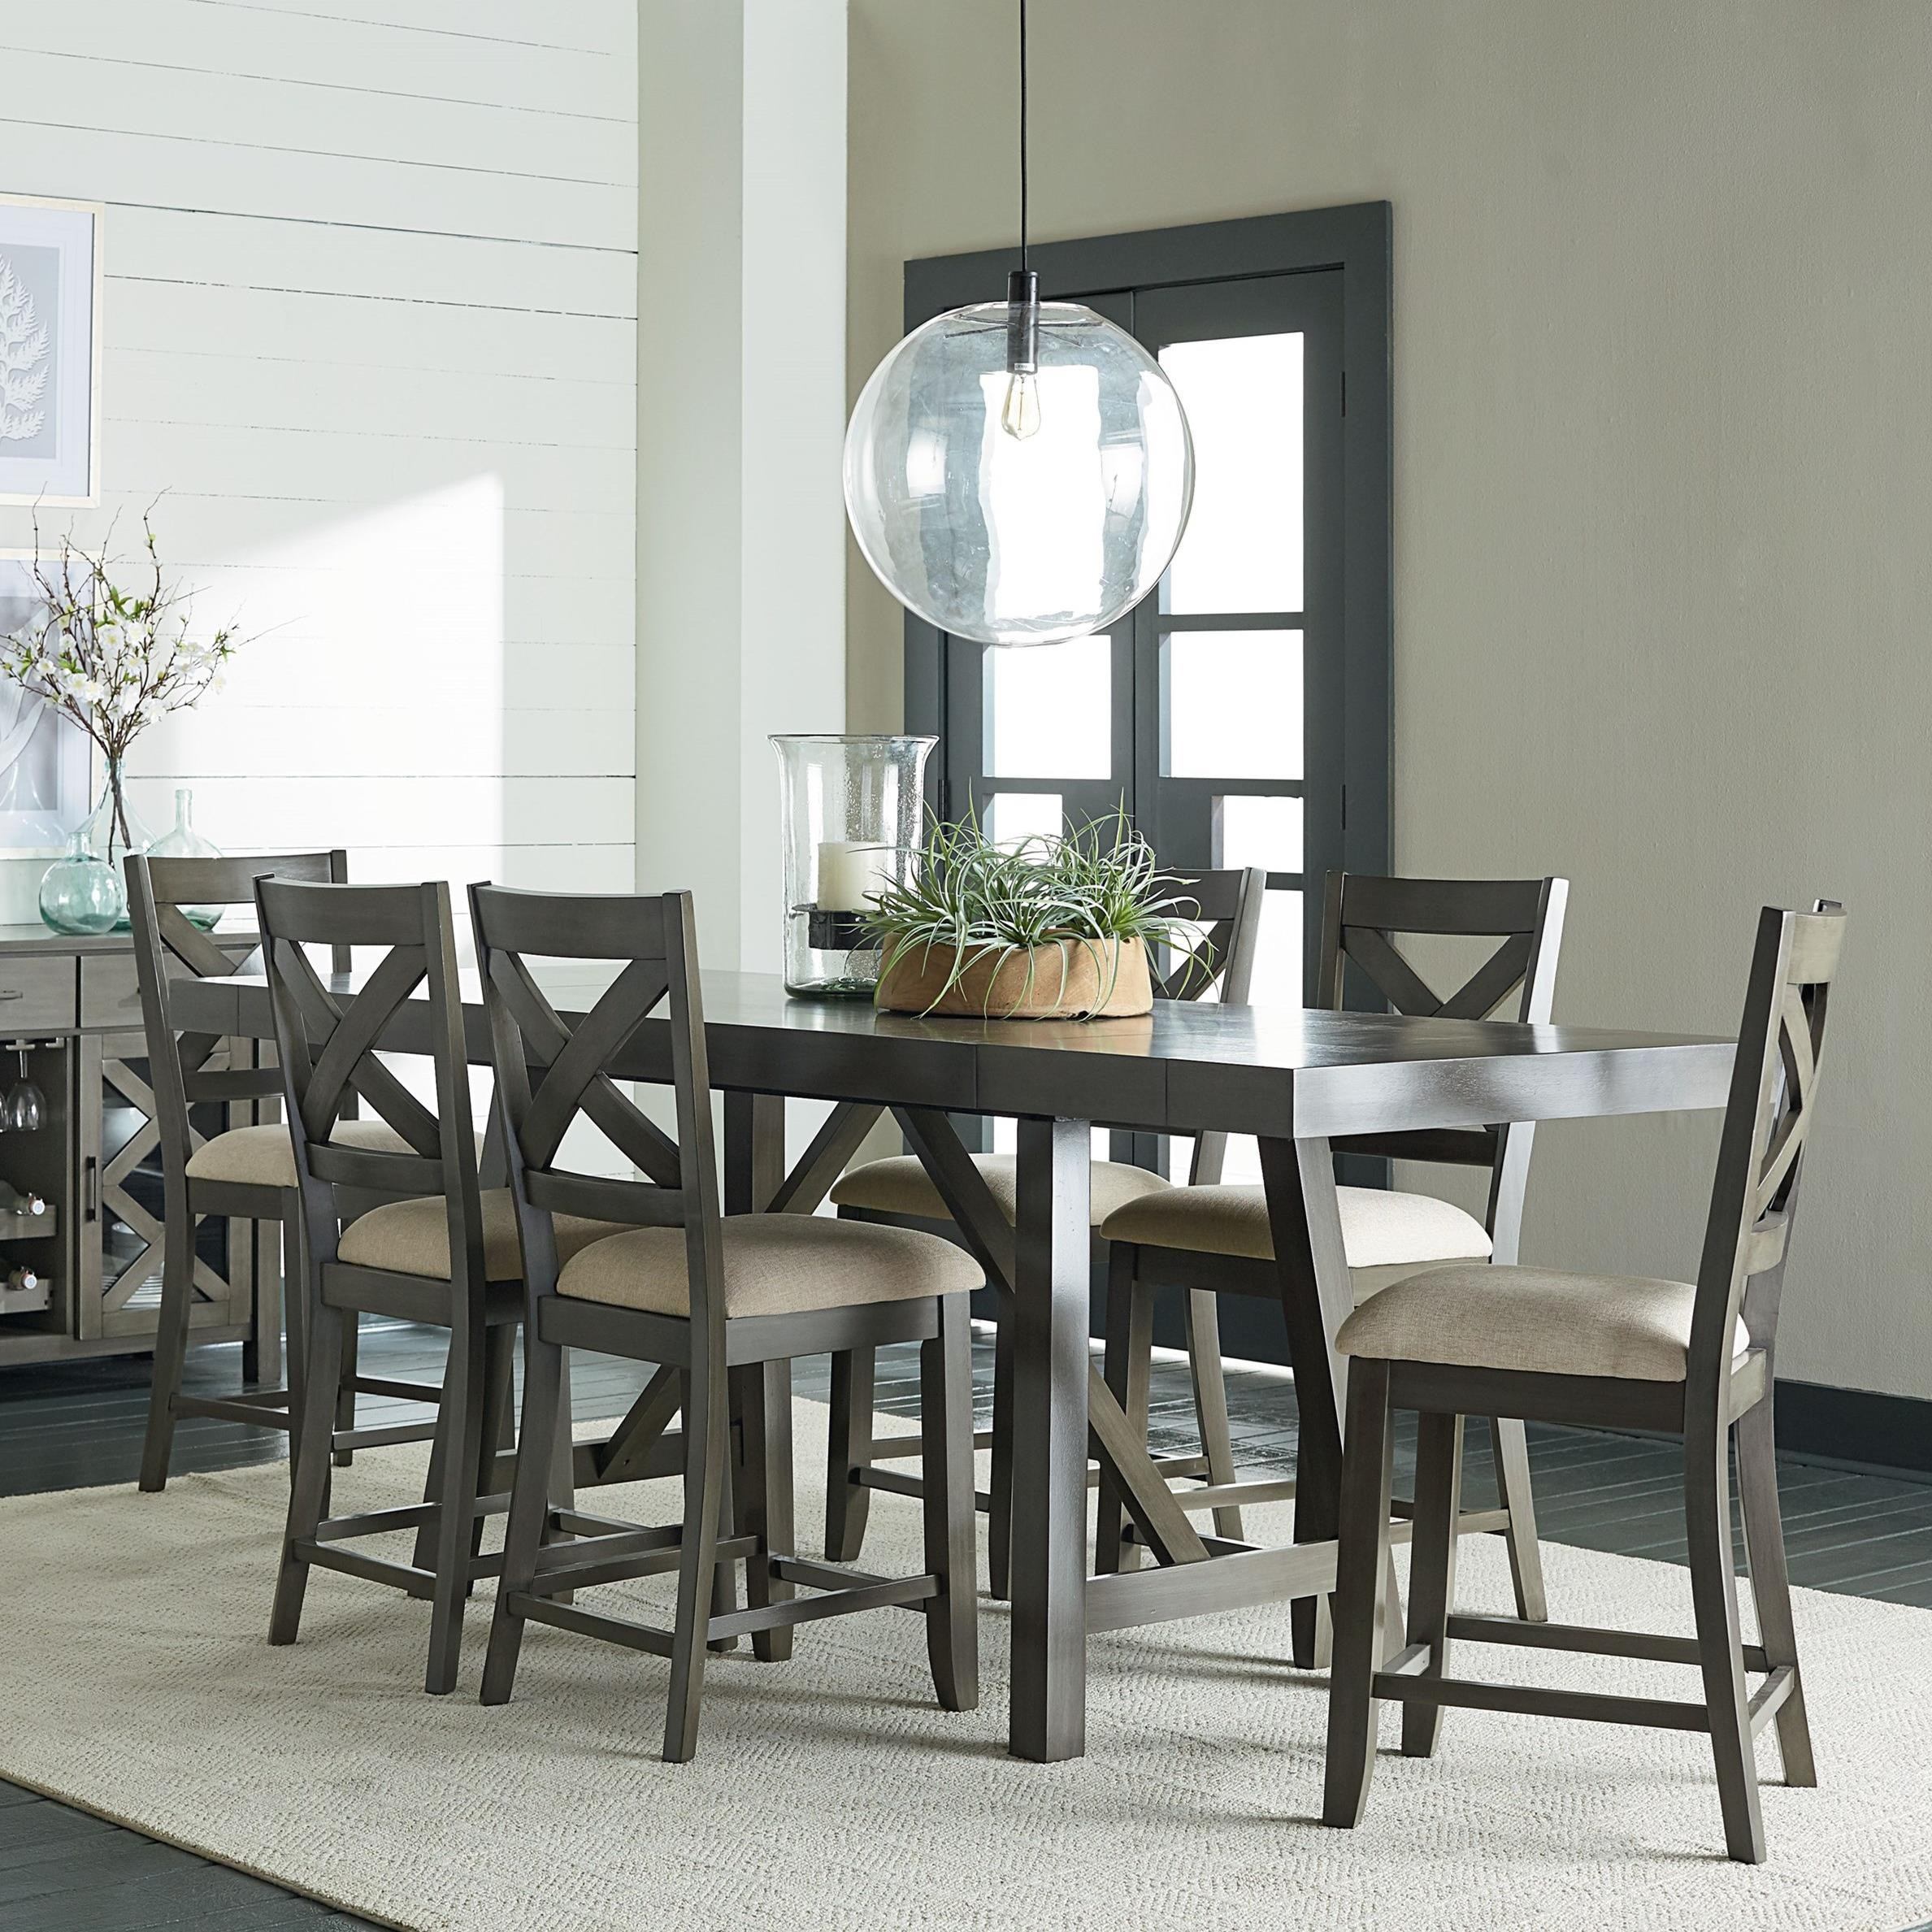 Dining Room Sets: Counter Height 7-Piece Dining Room Table Set By Standard